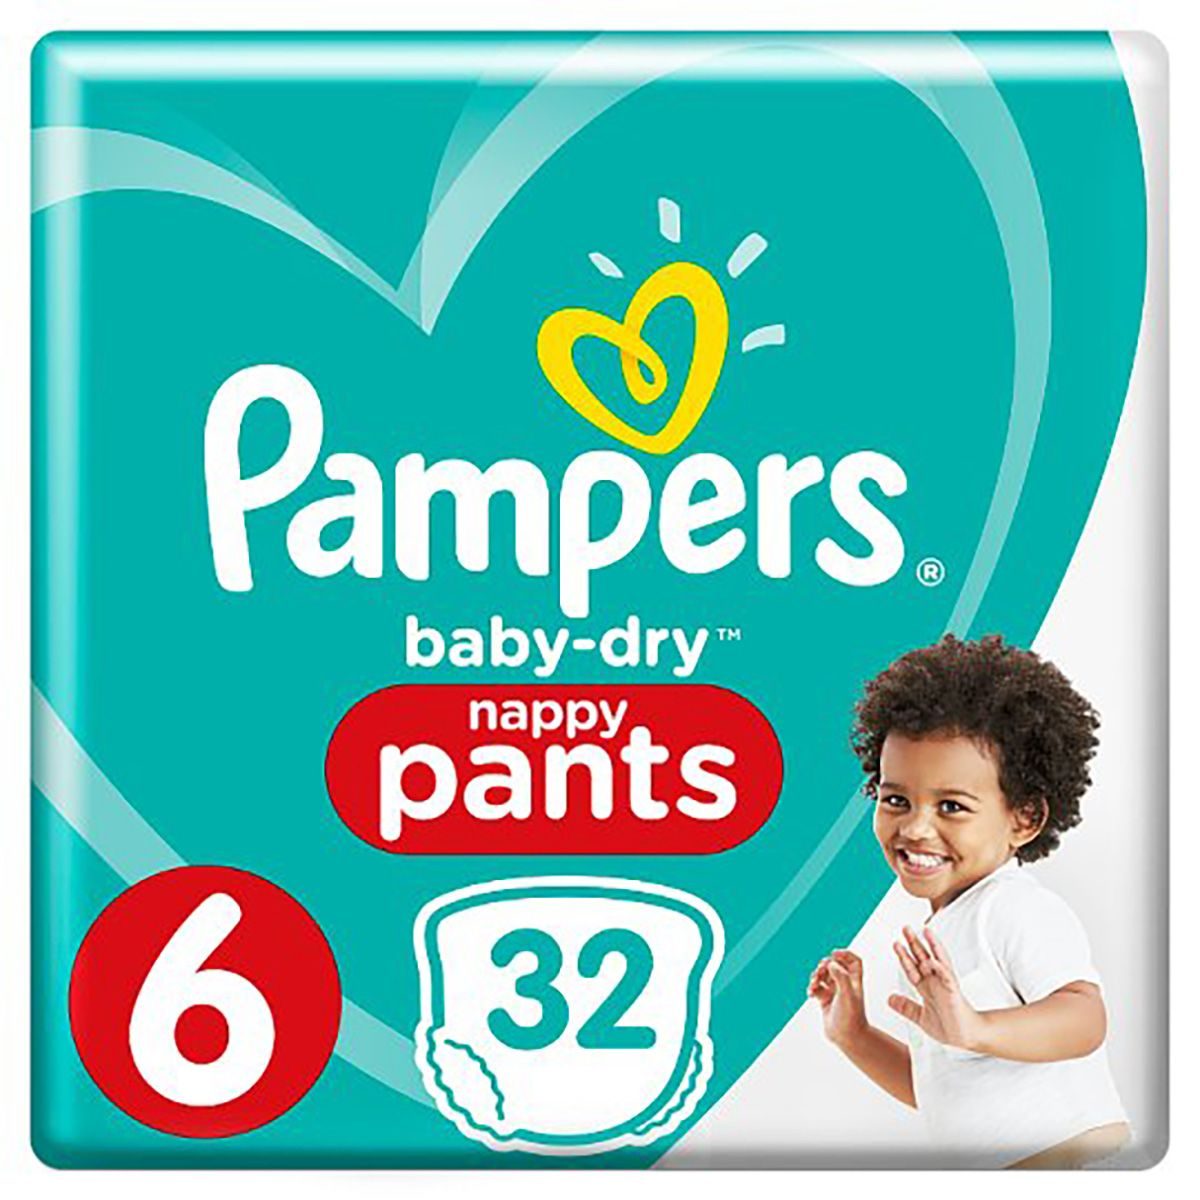 Pampers Baby-Dry Pants Nappy Pants Diaper - Size 6 - 32 pcs